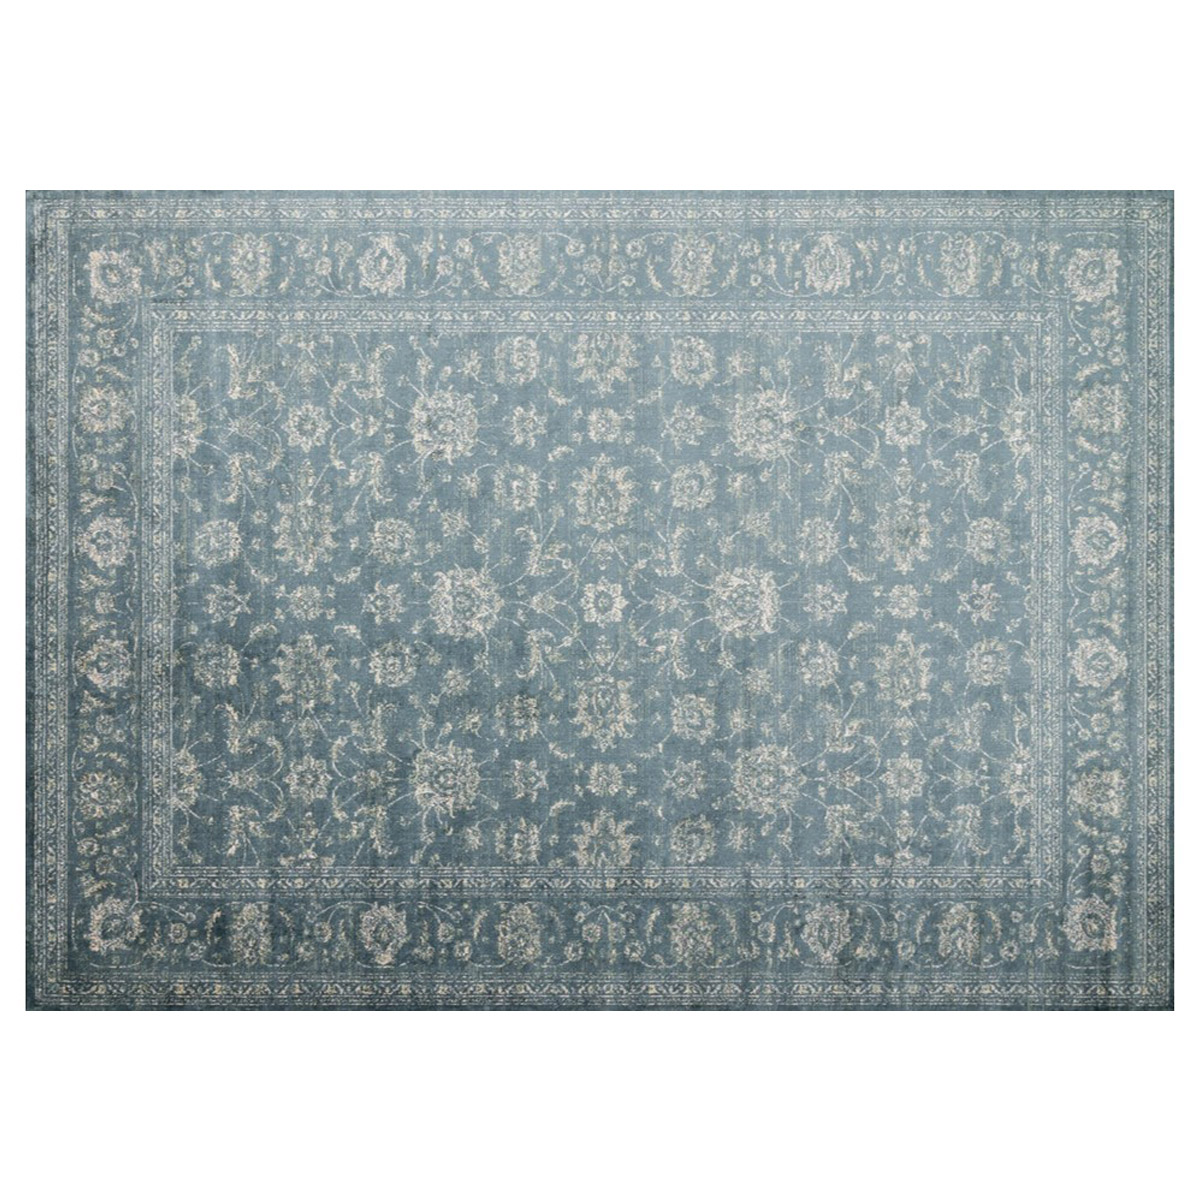 Jed Denim Rug - 2 x 8